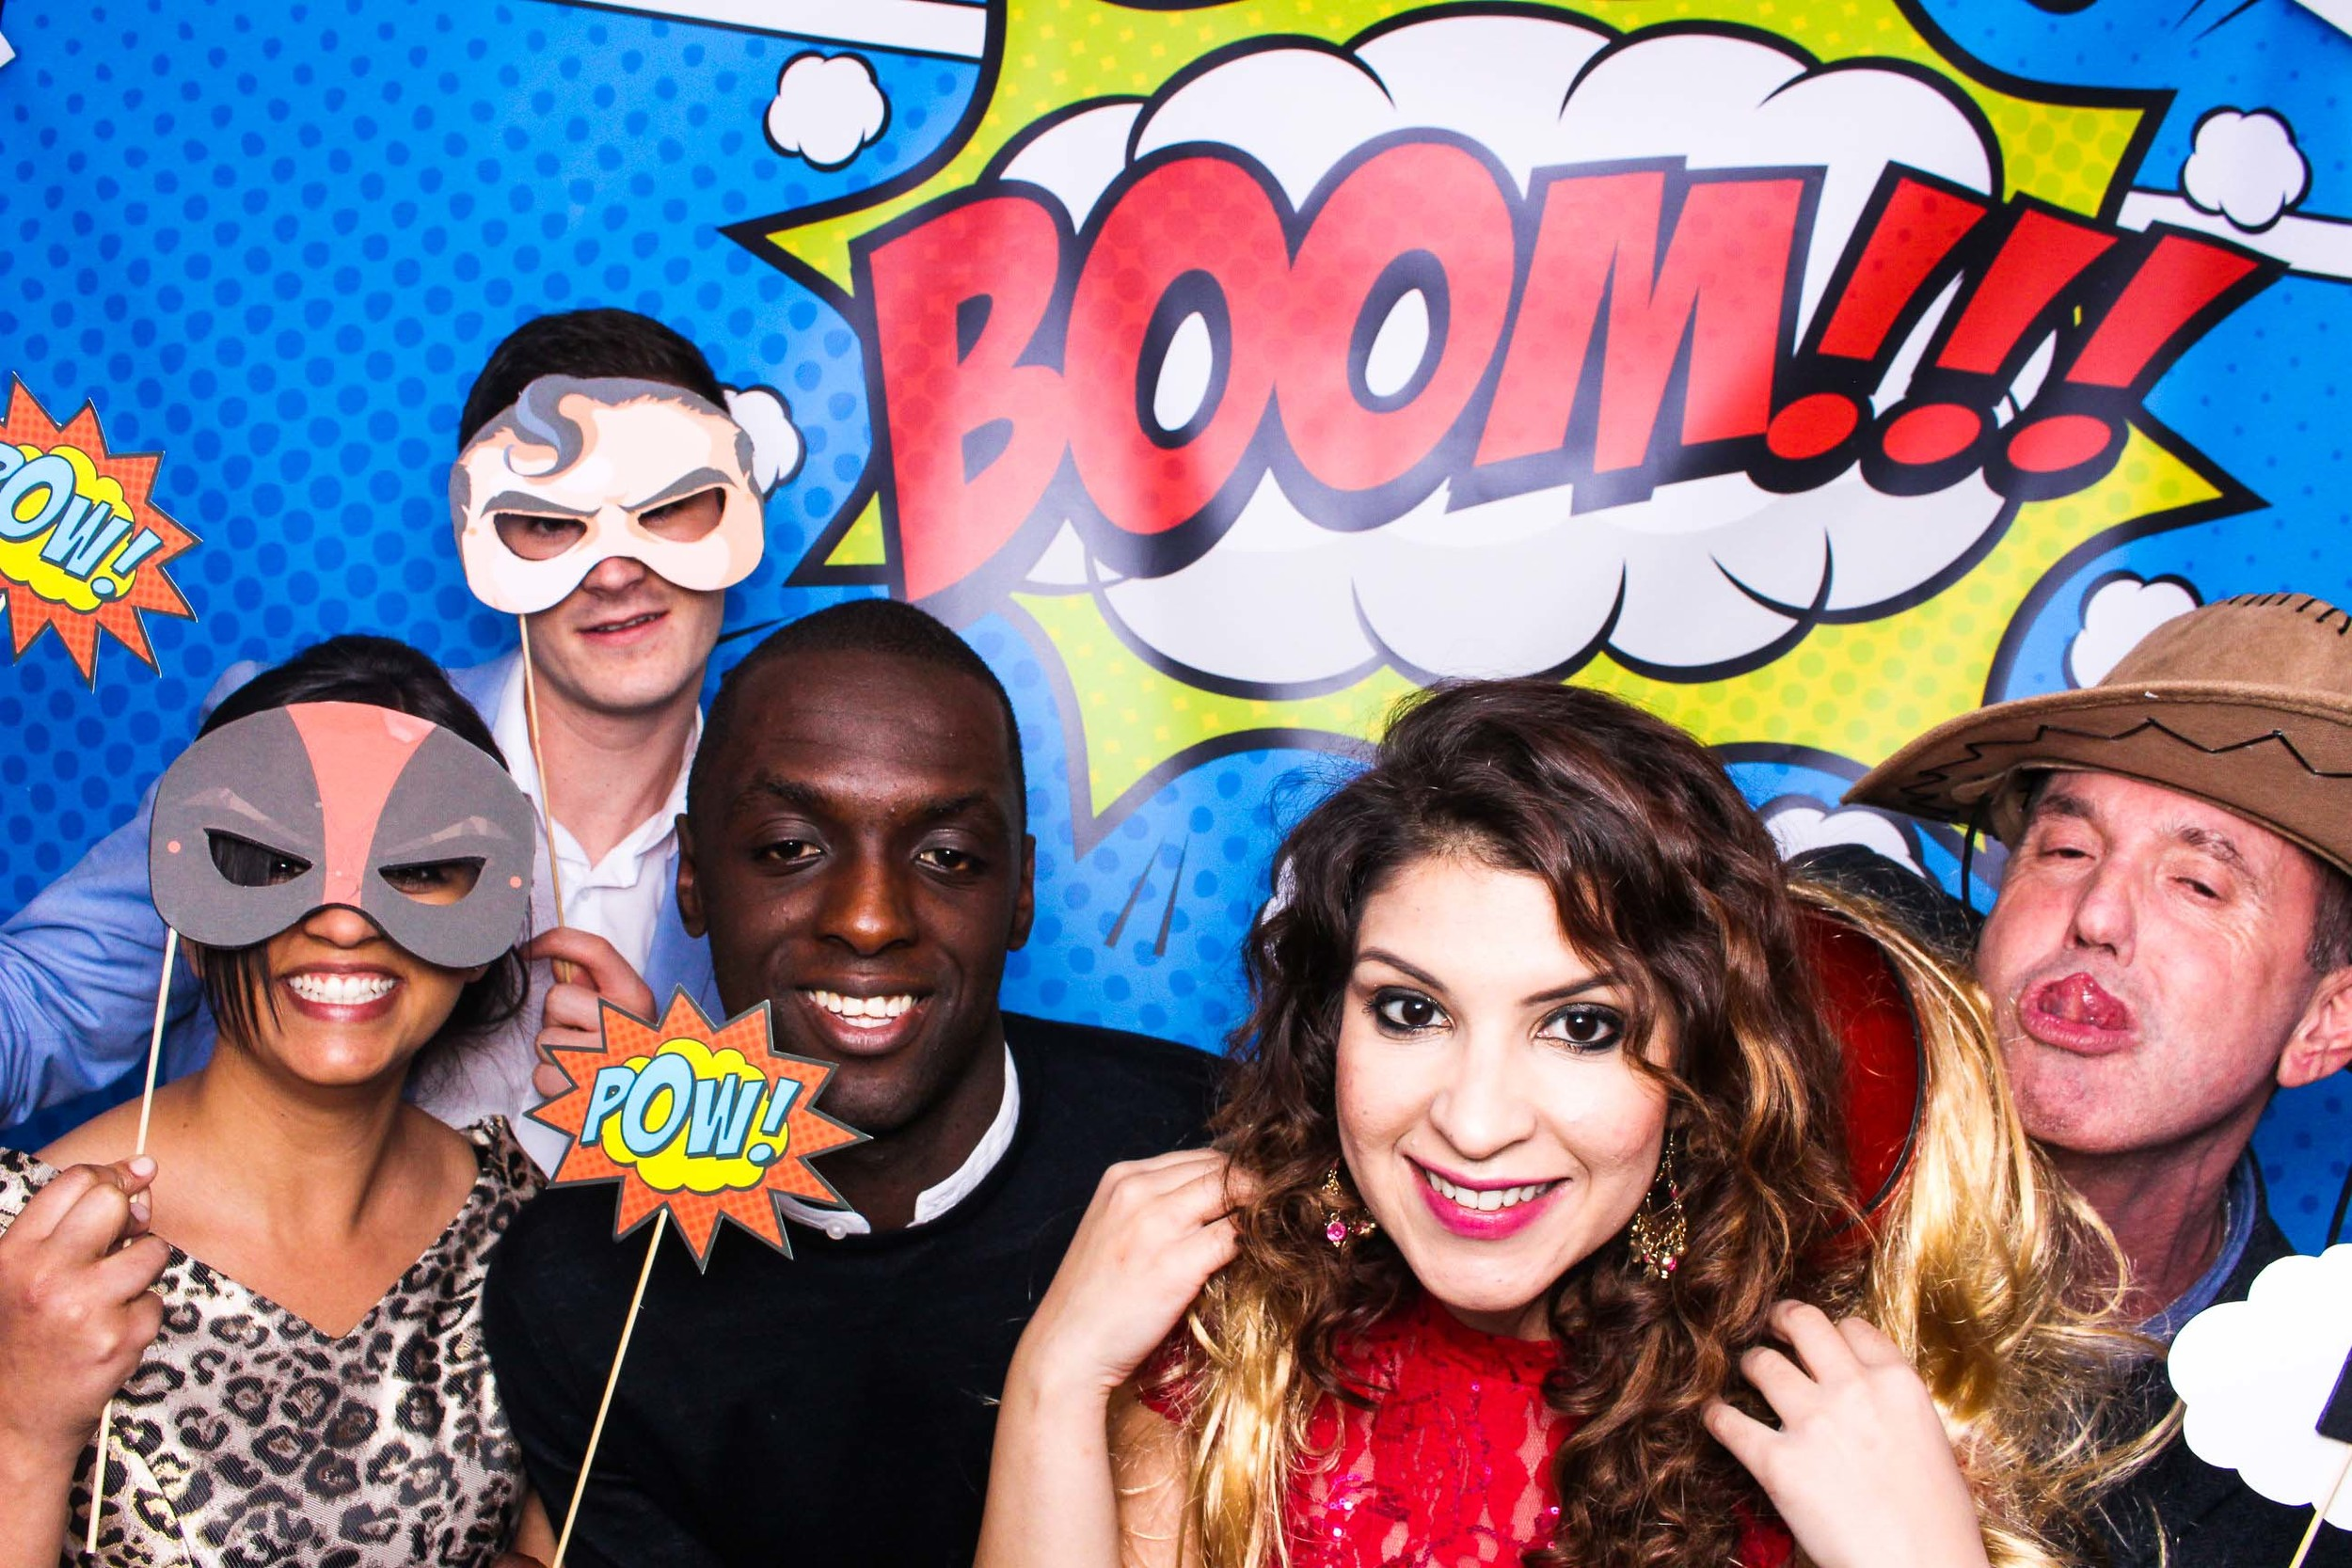 Fotoauto Photo Booth Hire - Shop Direct-195.jpg